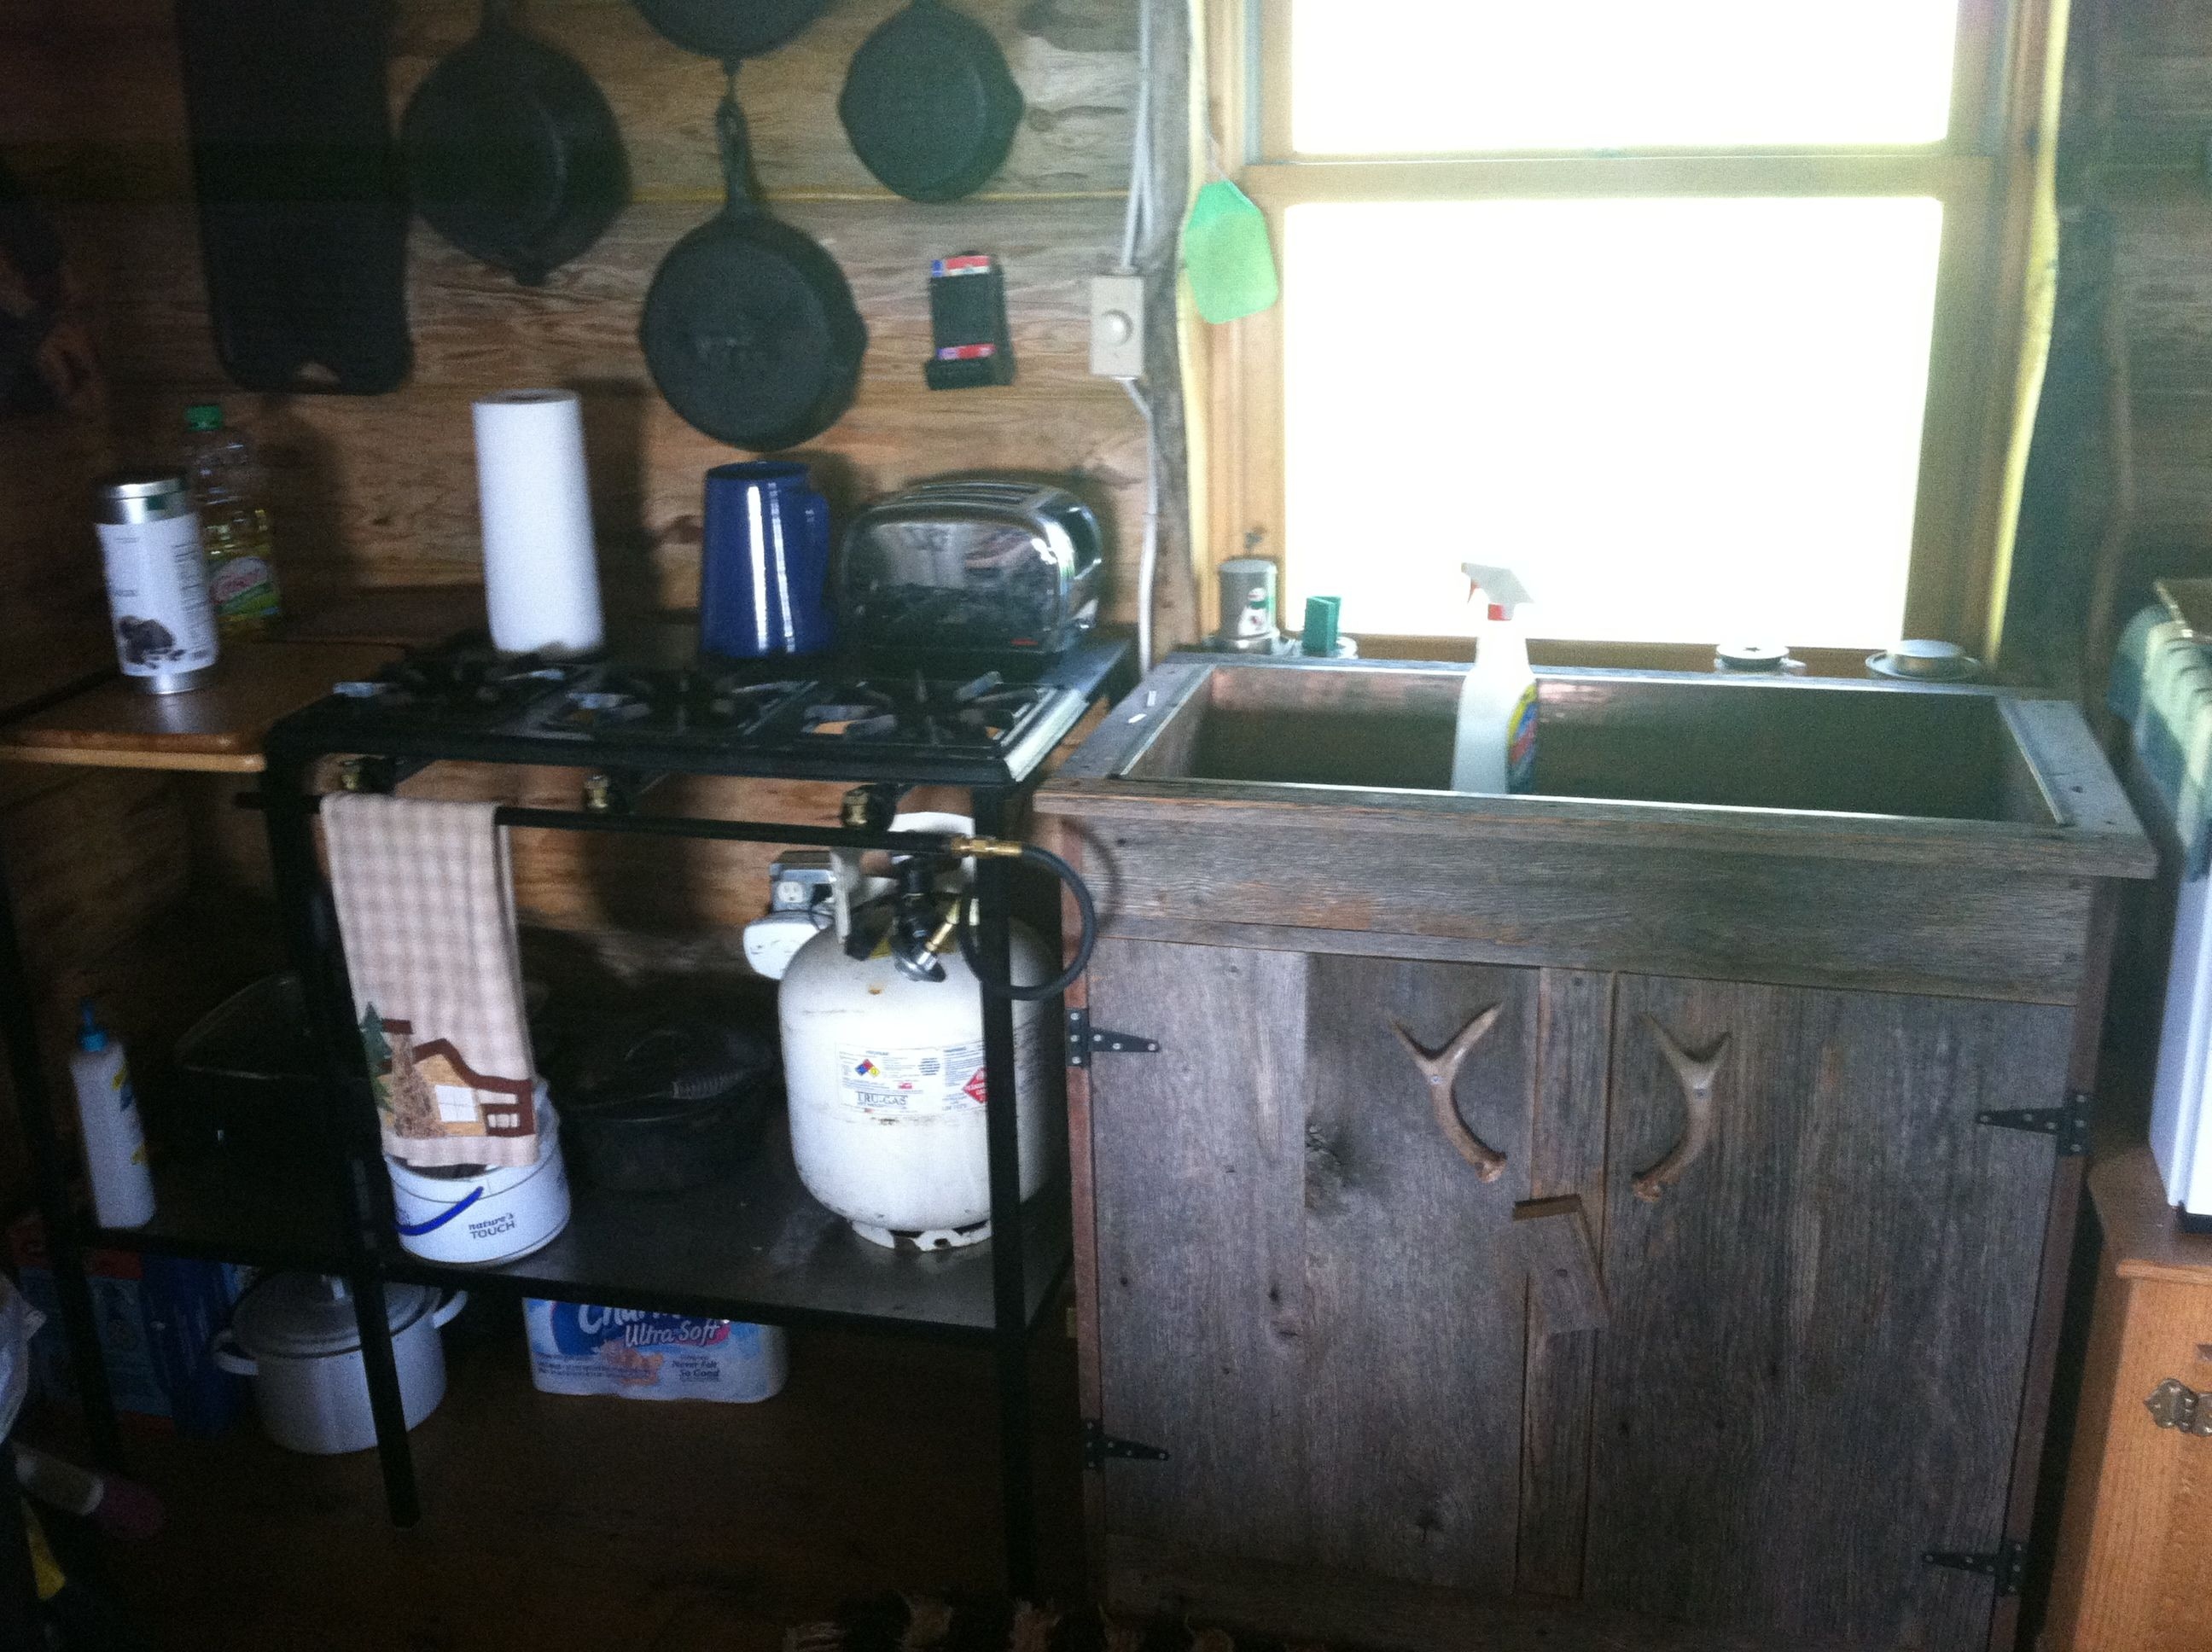 Marvelous photograph of Dry sink inside Uncle John's cabin. Bunk House Designs Pinterest with #827A49 color and 2592x1936 pixels